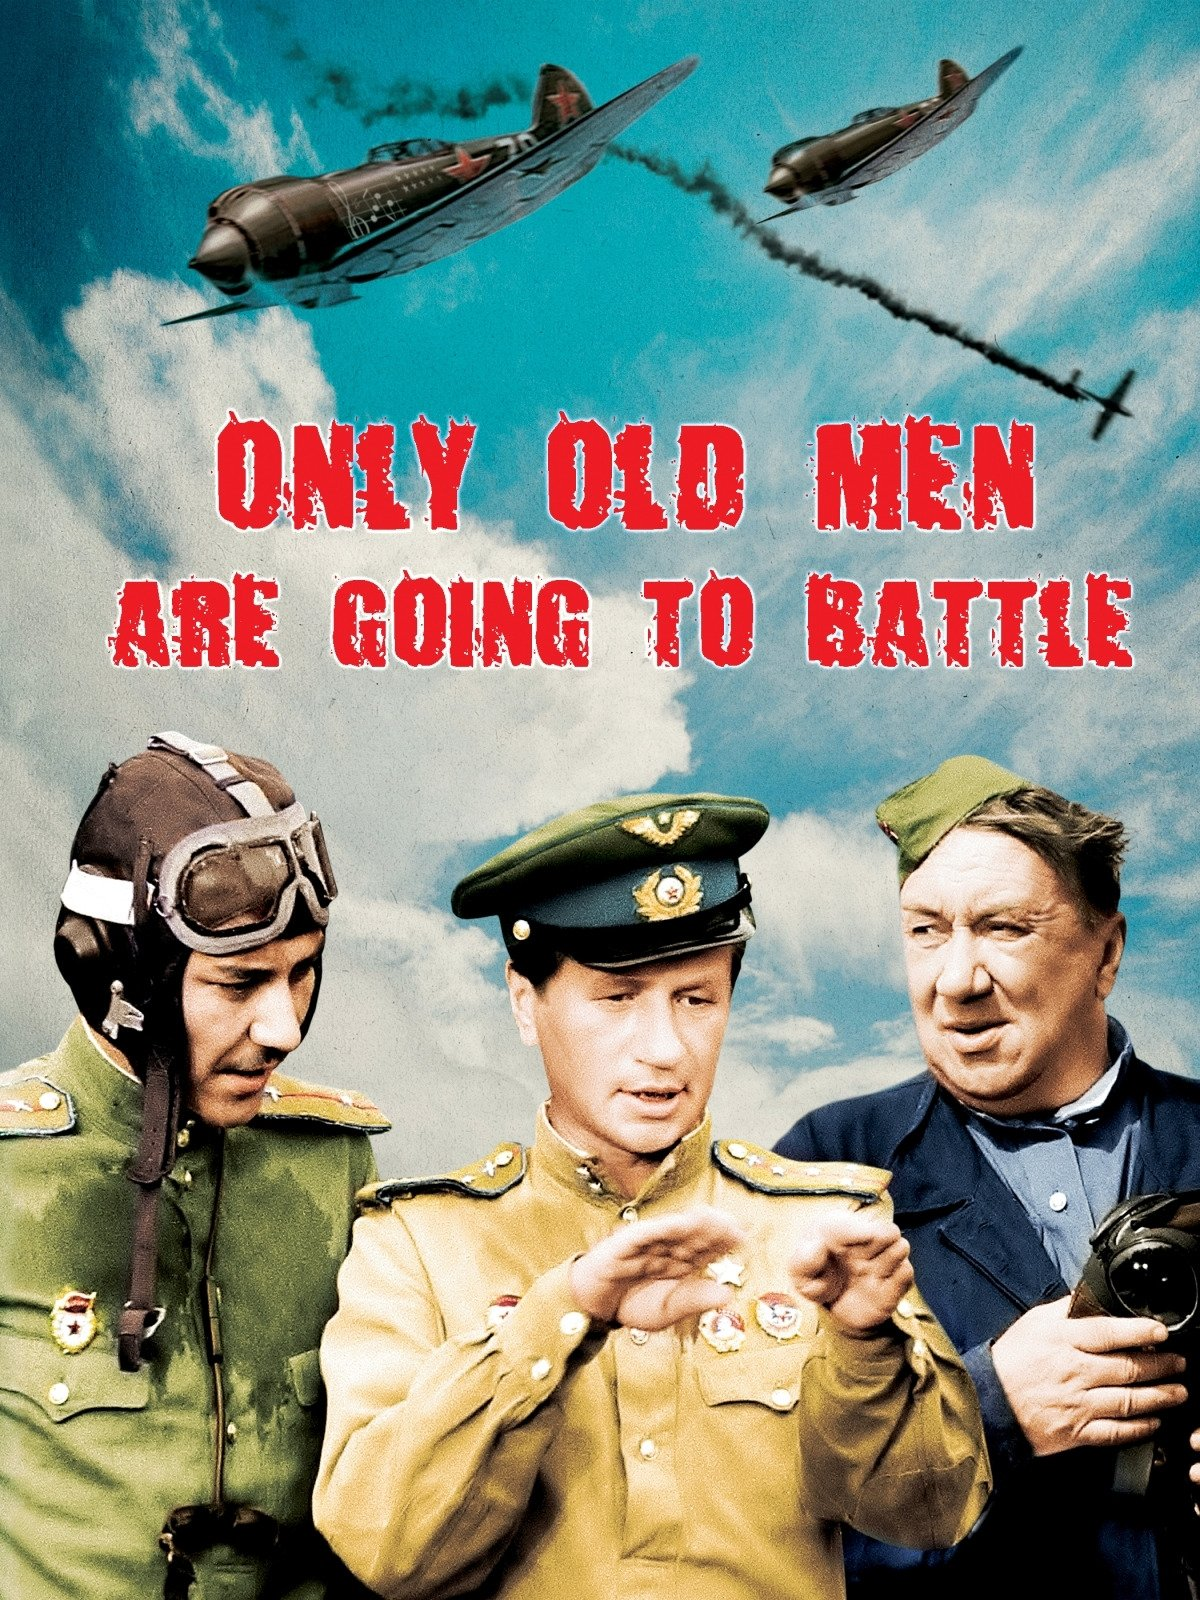 Only Old Men Are Going To Battle